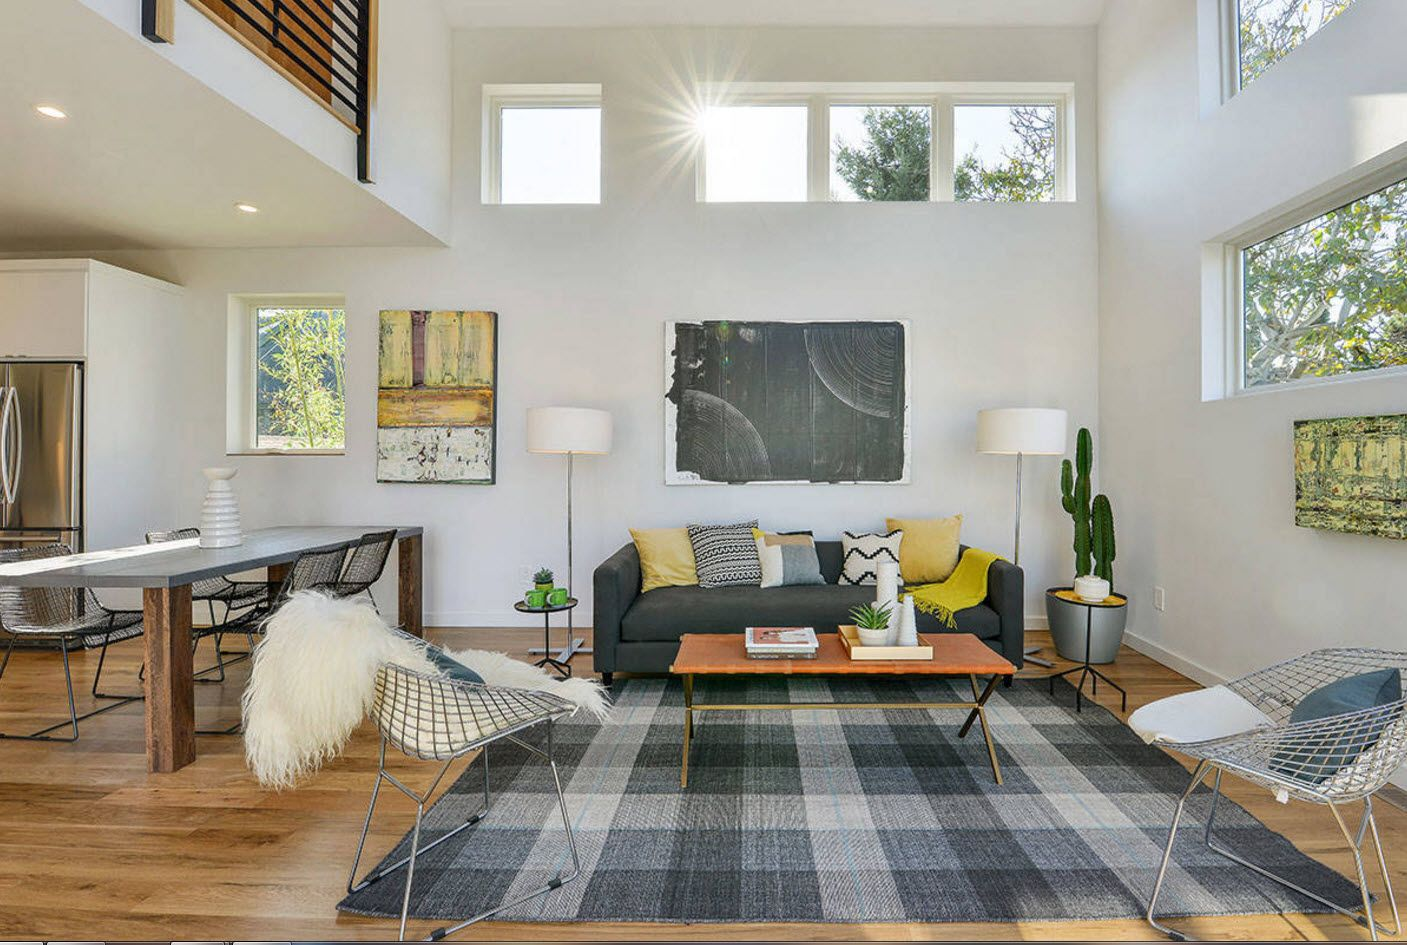 High ceiling in the coridla atmosphere of the classic living room design